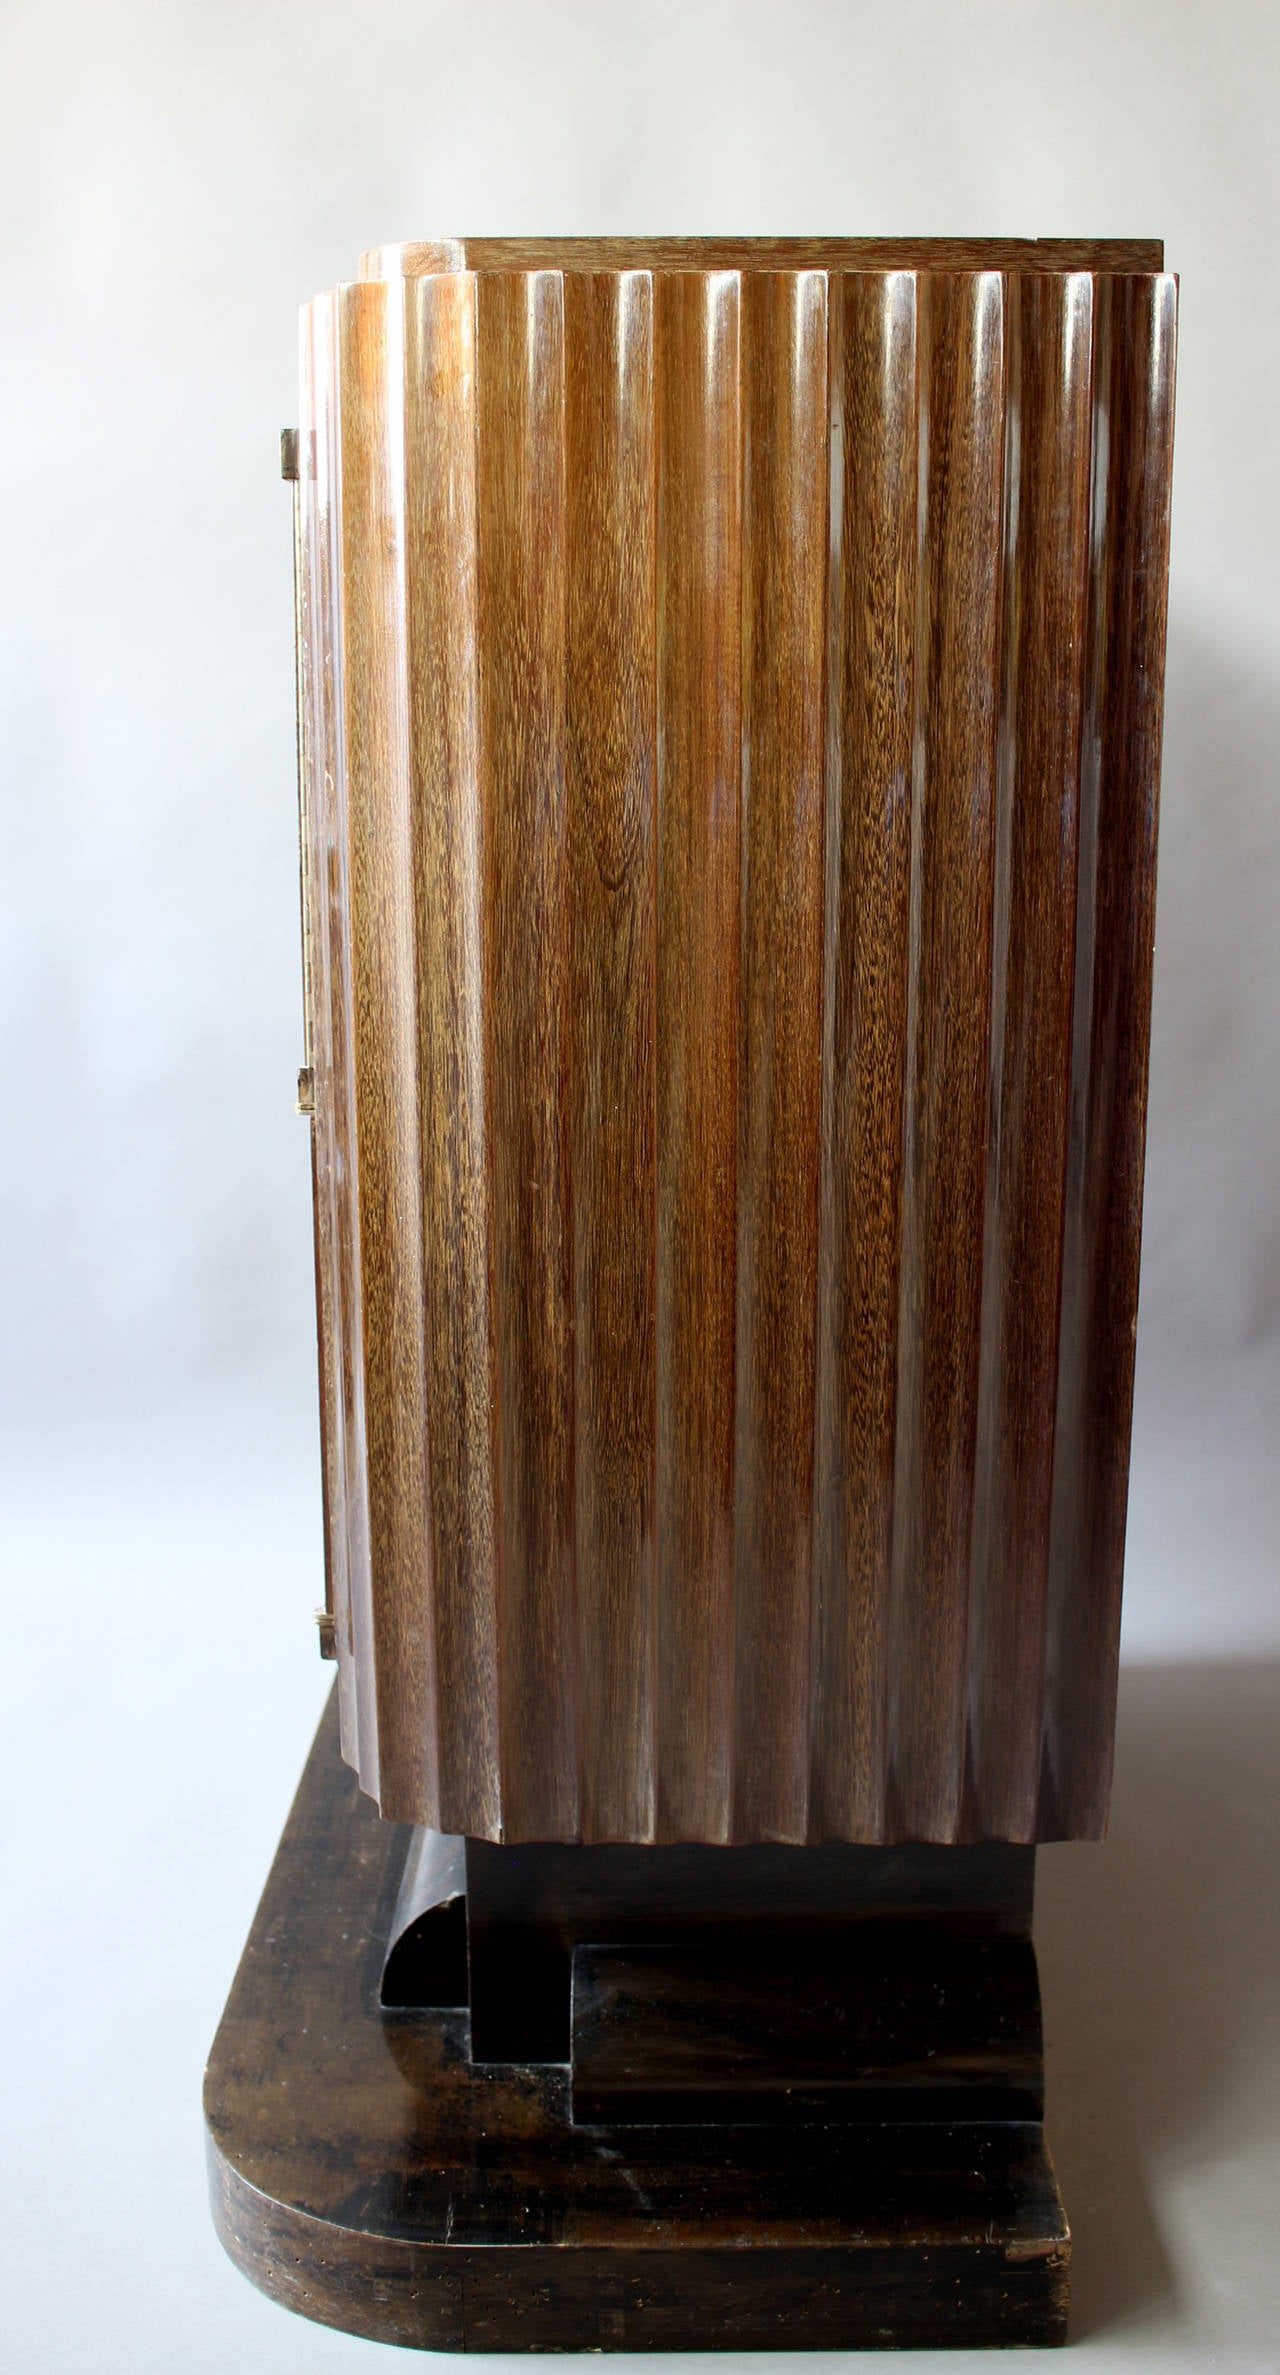 A Fine French Art Deco Silverware Cabinet by Christian Krass For Sale 2